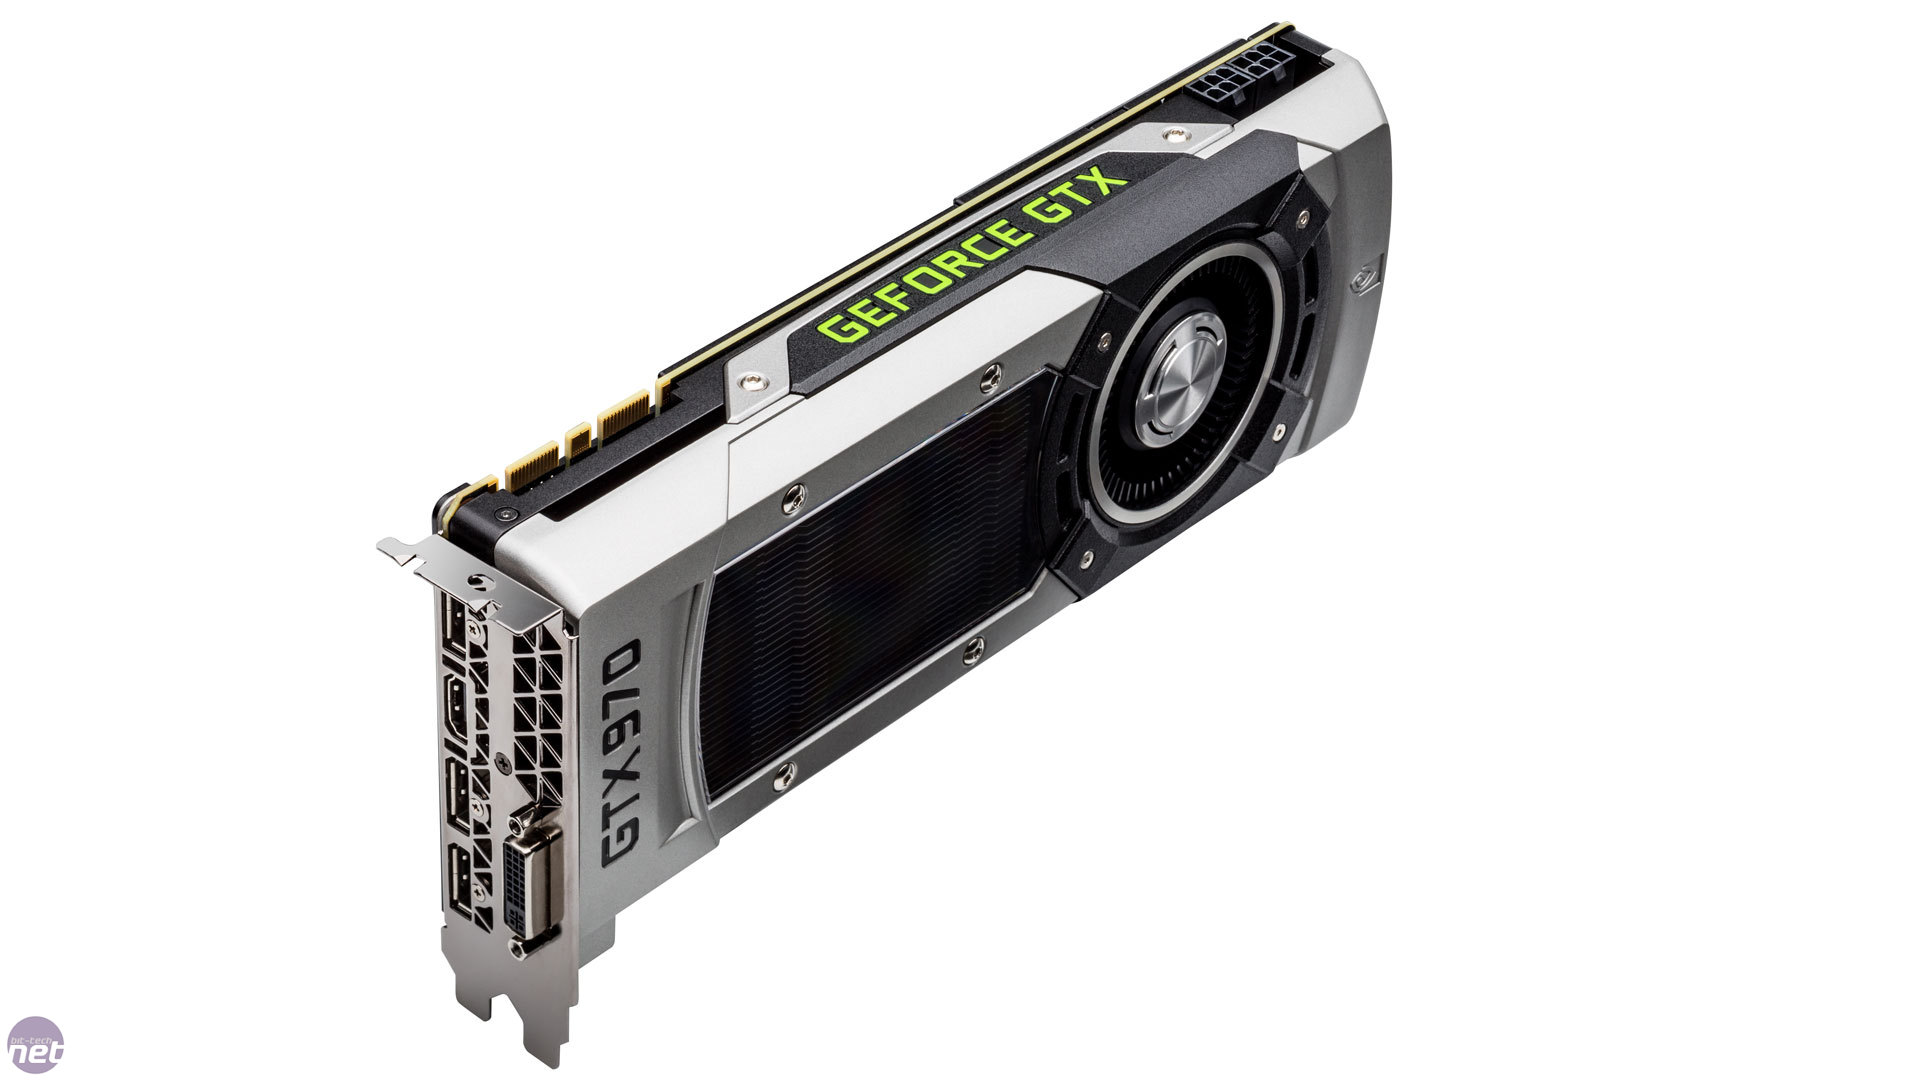 Can i pair a asus GeForce gtx 970 with a bit older power